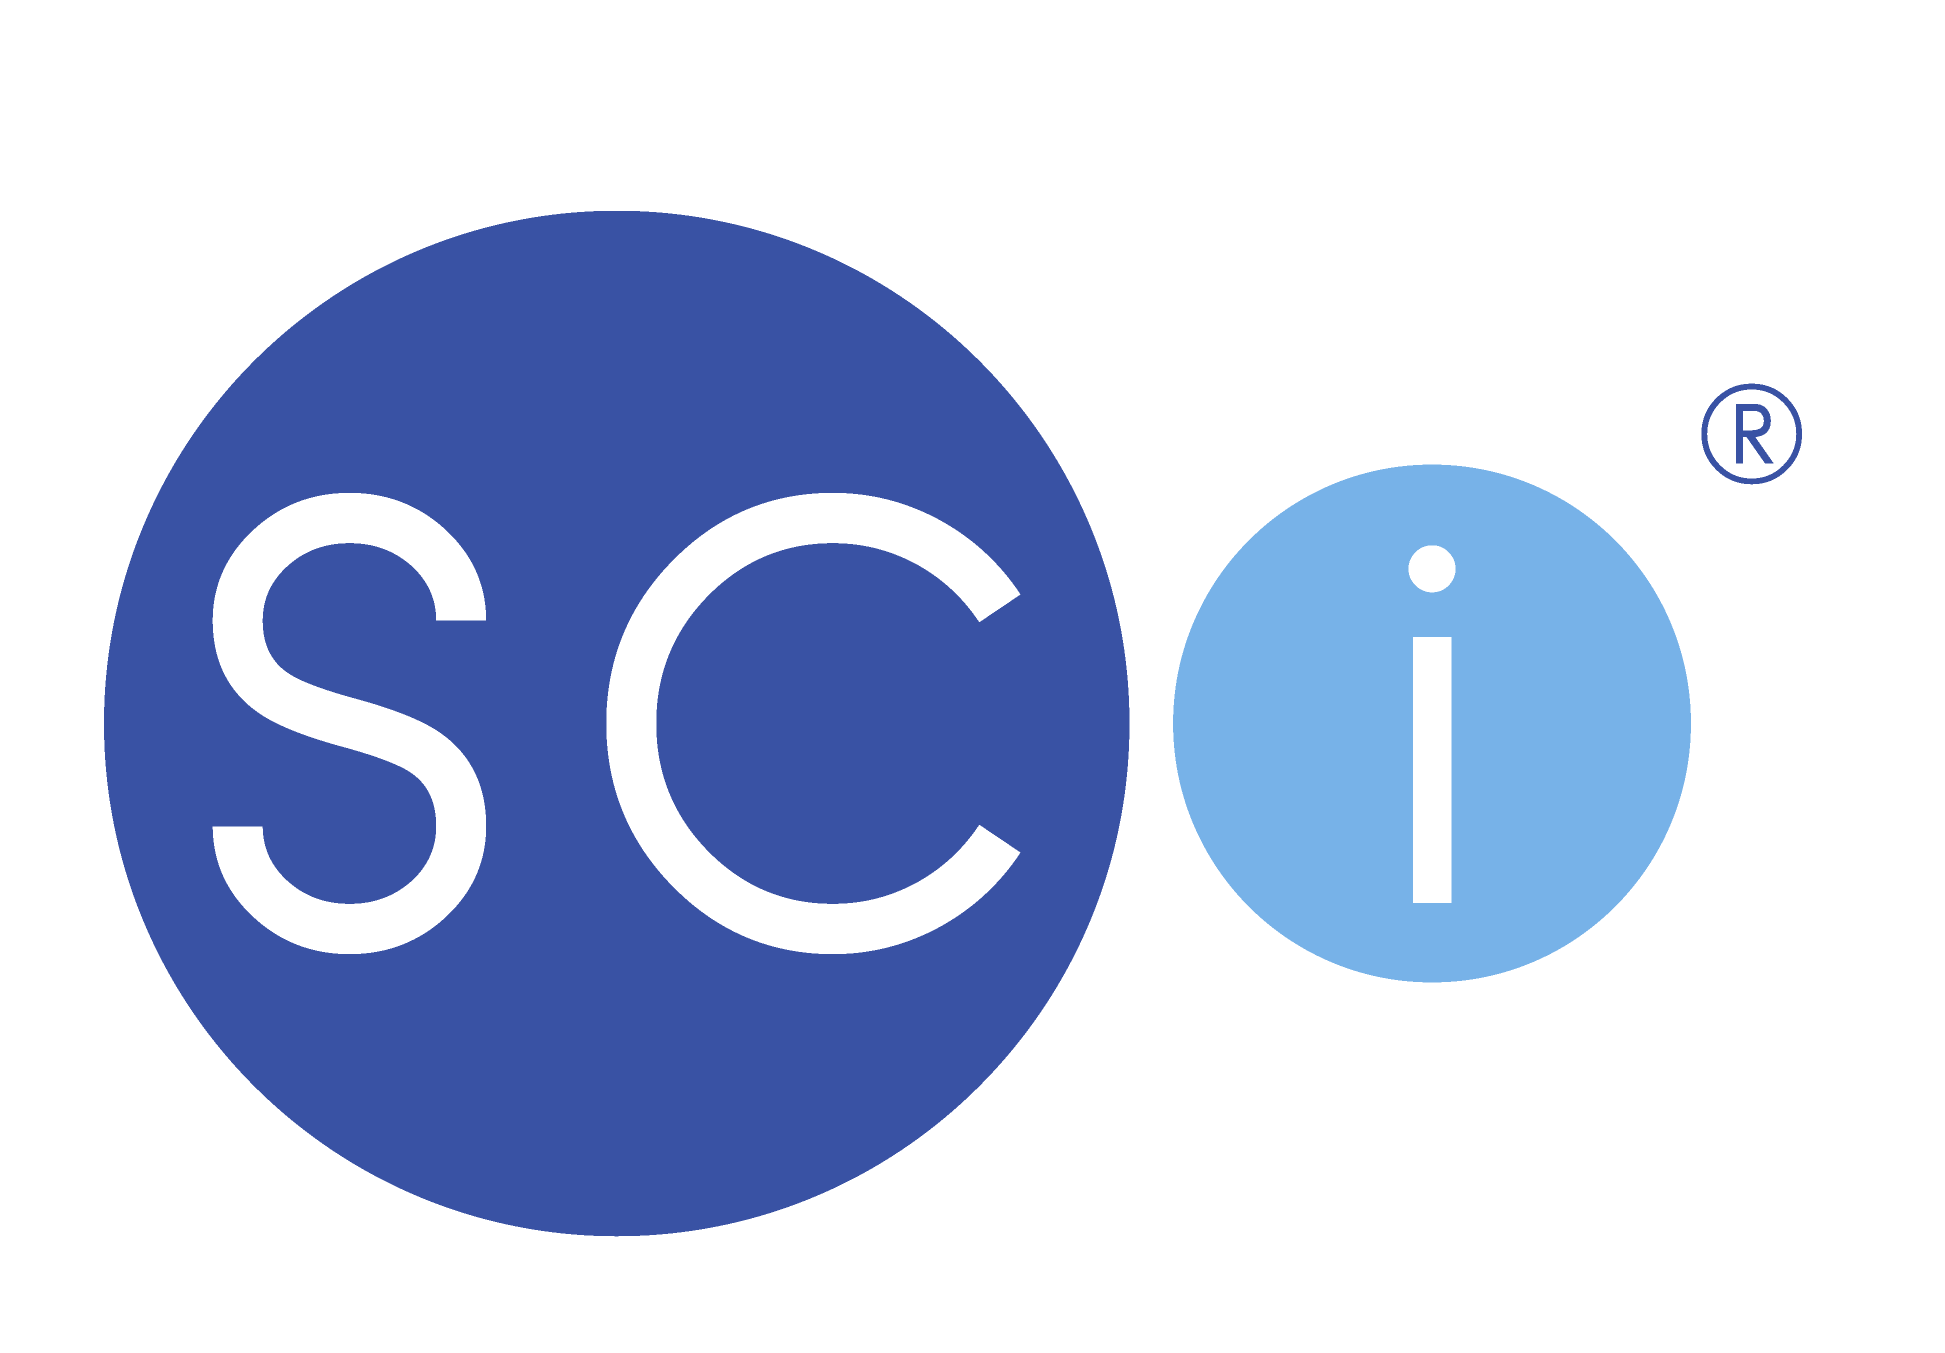 sci3.png